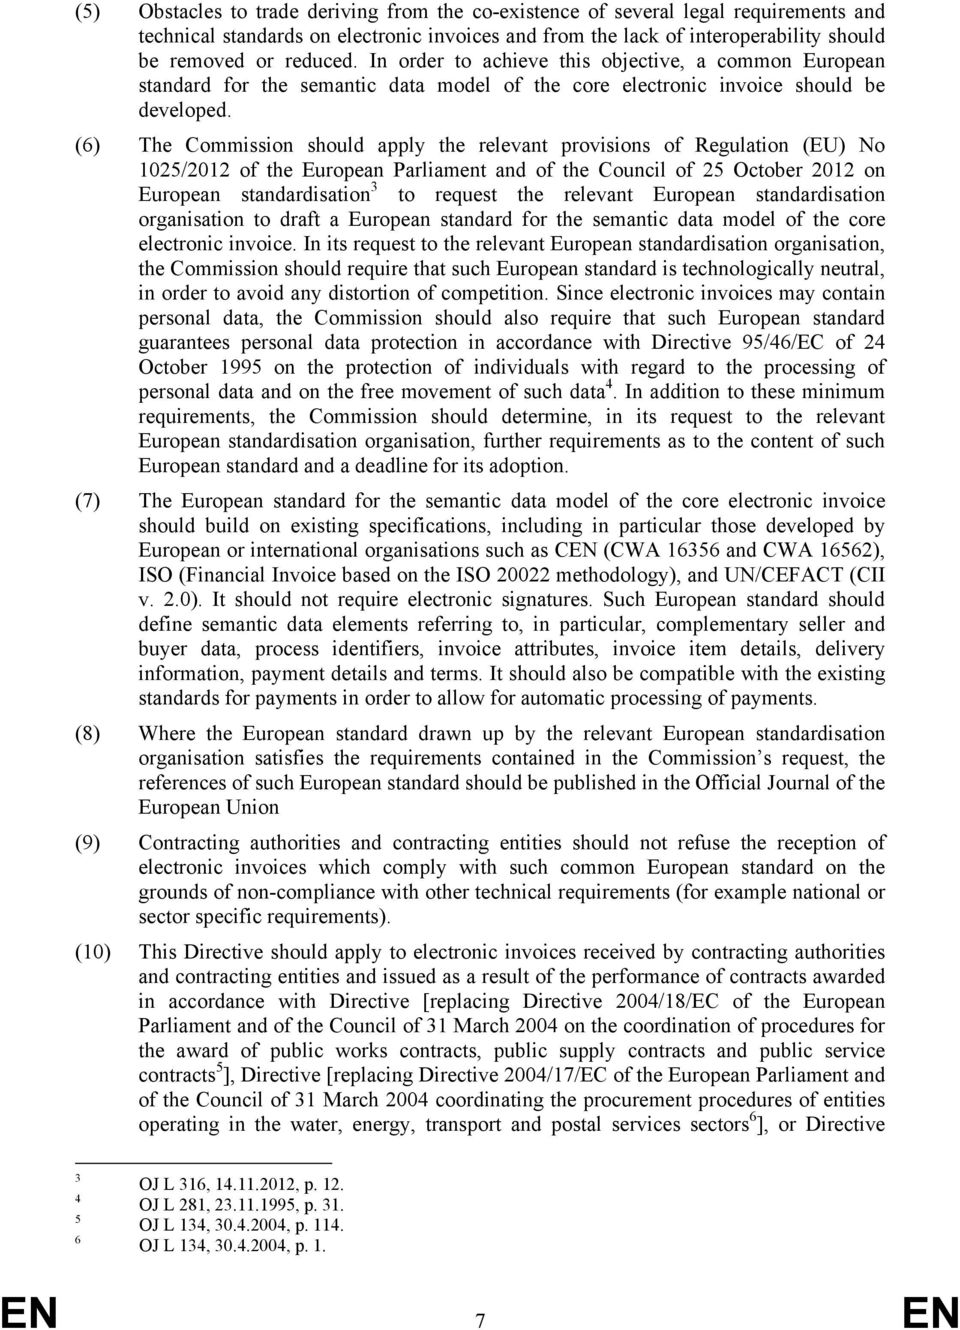 (6) The Commission should apply the relevant provisions of Regulation (EU) No 1025/2012 of the European Parliament and of the Council of 25 October 2012 on European standardisation 3 to request the